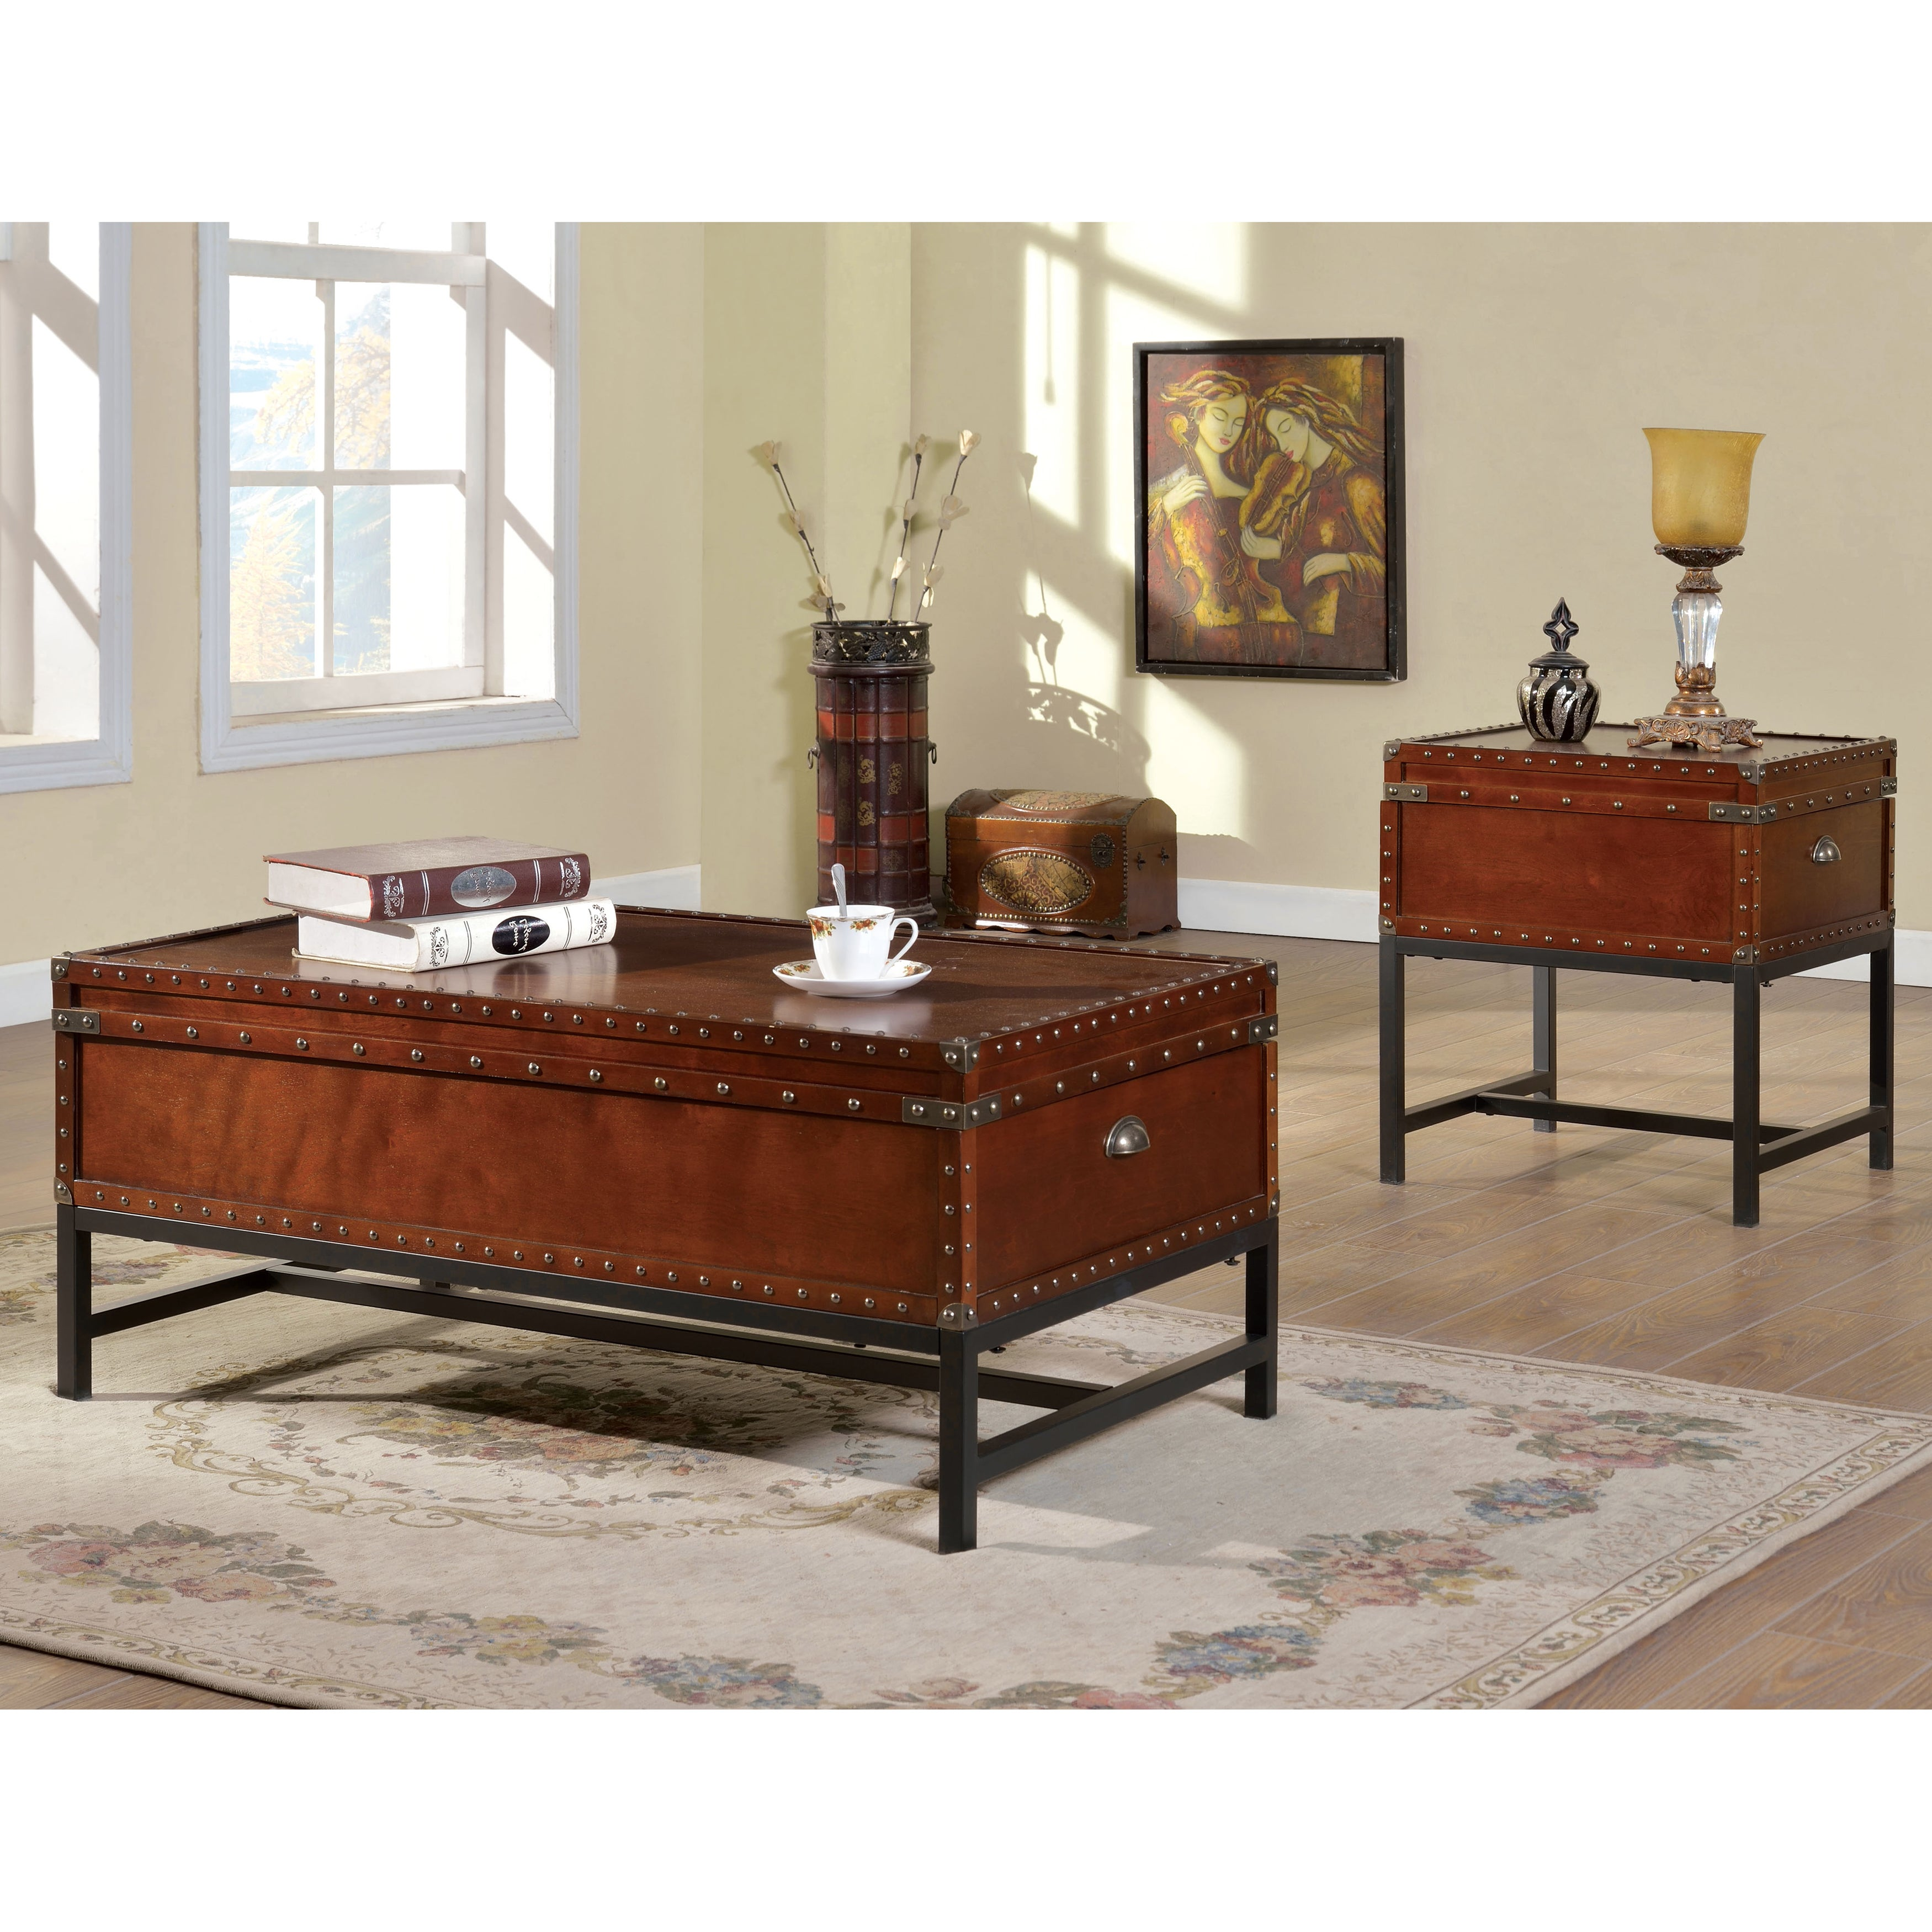 Furniture of America Dravens Industrial Trunk Style 2-Pie...